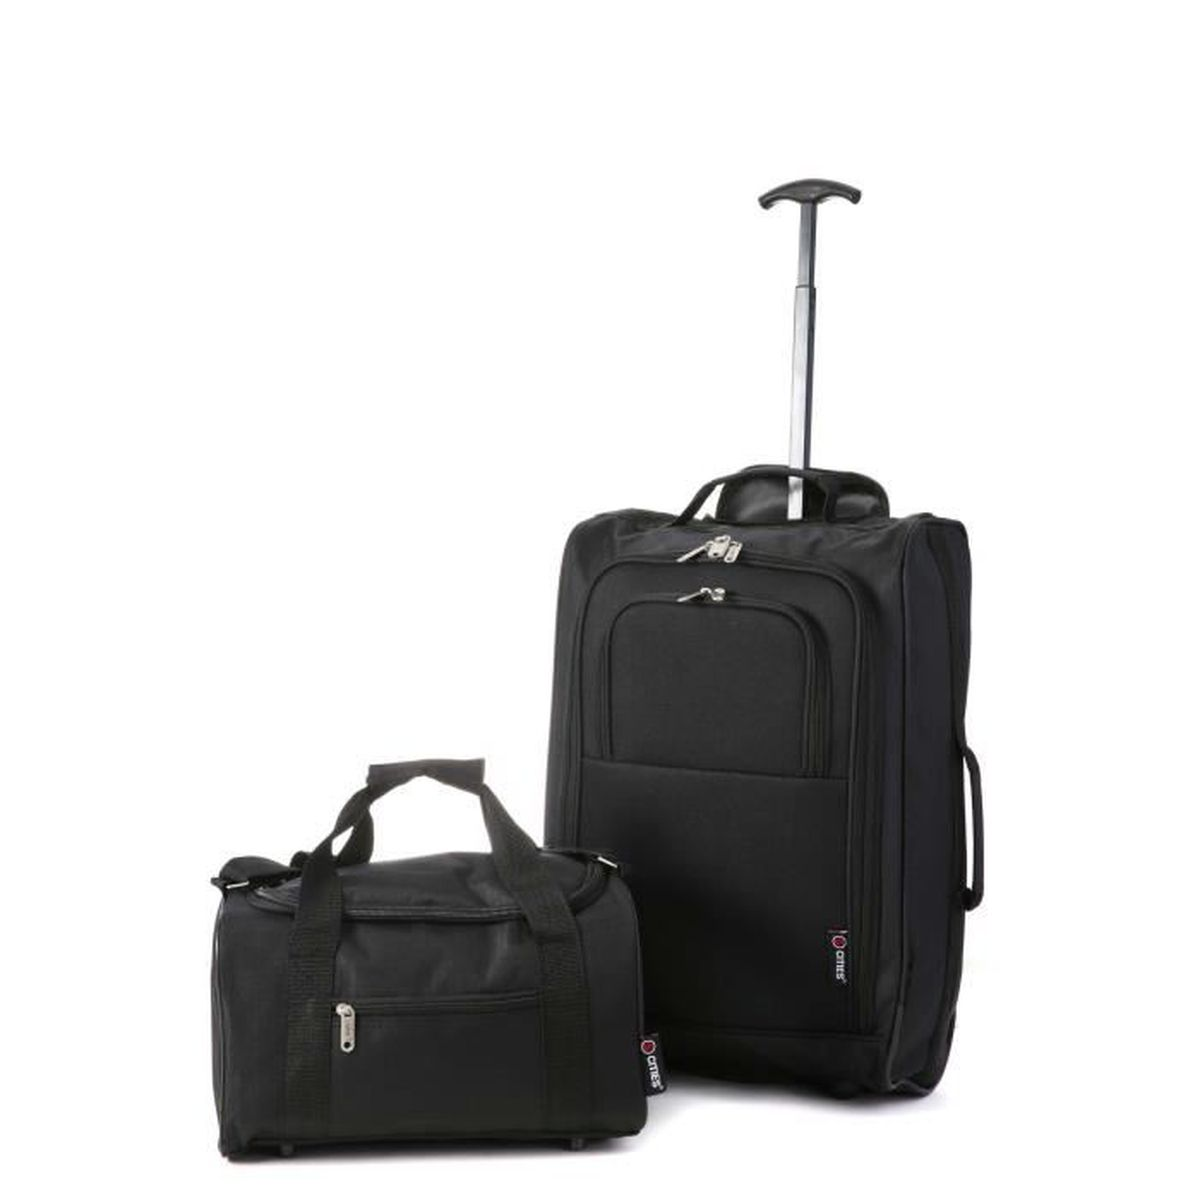 valise de cabine bagage main 55 x 40 x 20 cm deuxi me 35 x 20 x 20 achat vente valise. Black Bedroom Furniture Sets. Home Design Ideas